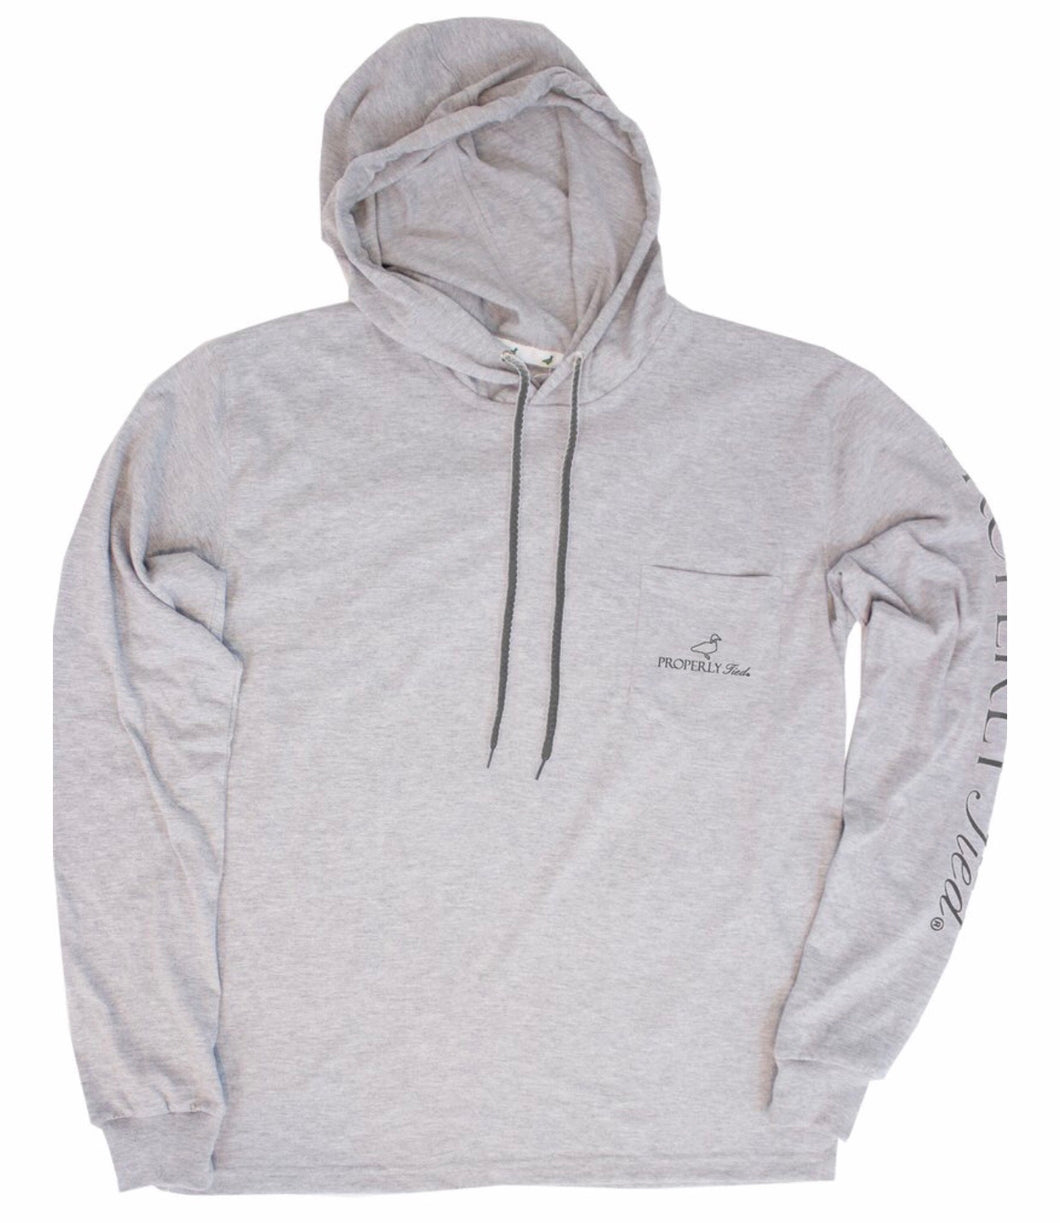 Gulf Hoodie - Light Heather Grey